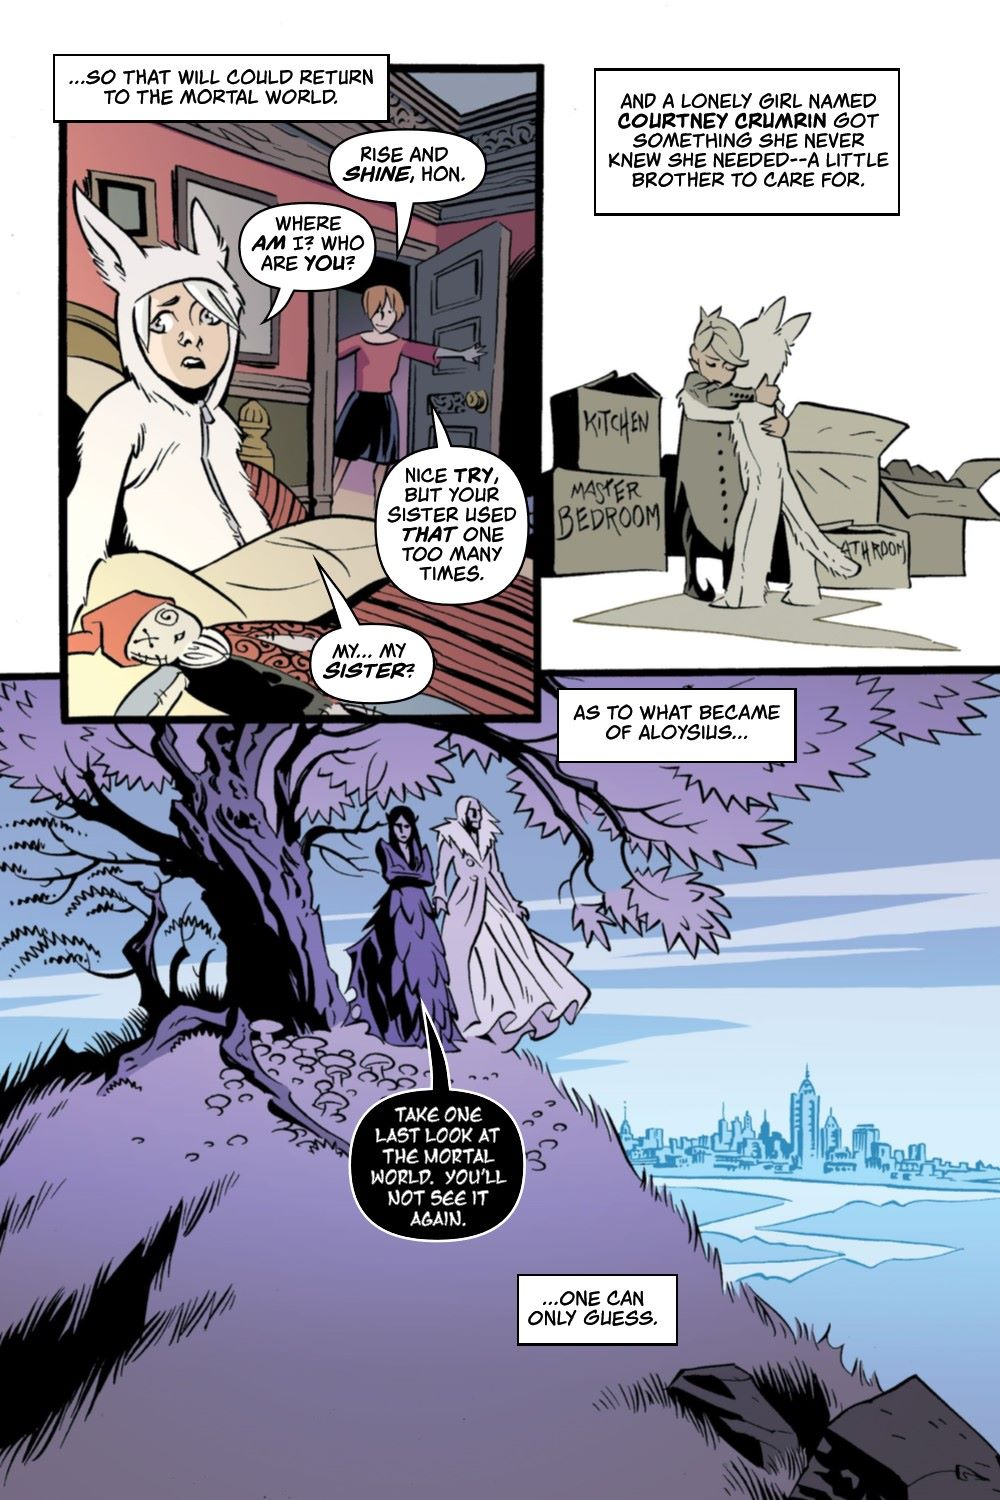 CRUMCHRON-V1-REFERENCE-011 ComicList Previews: THE CRUMRIN CHRONICLES VOLUME 1 THE CHARMED AND THE CURSED TP